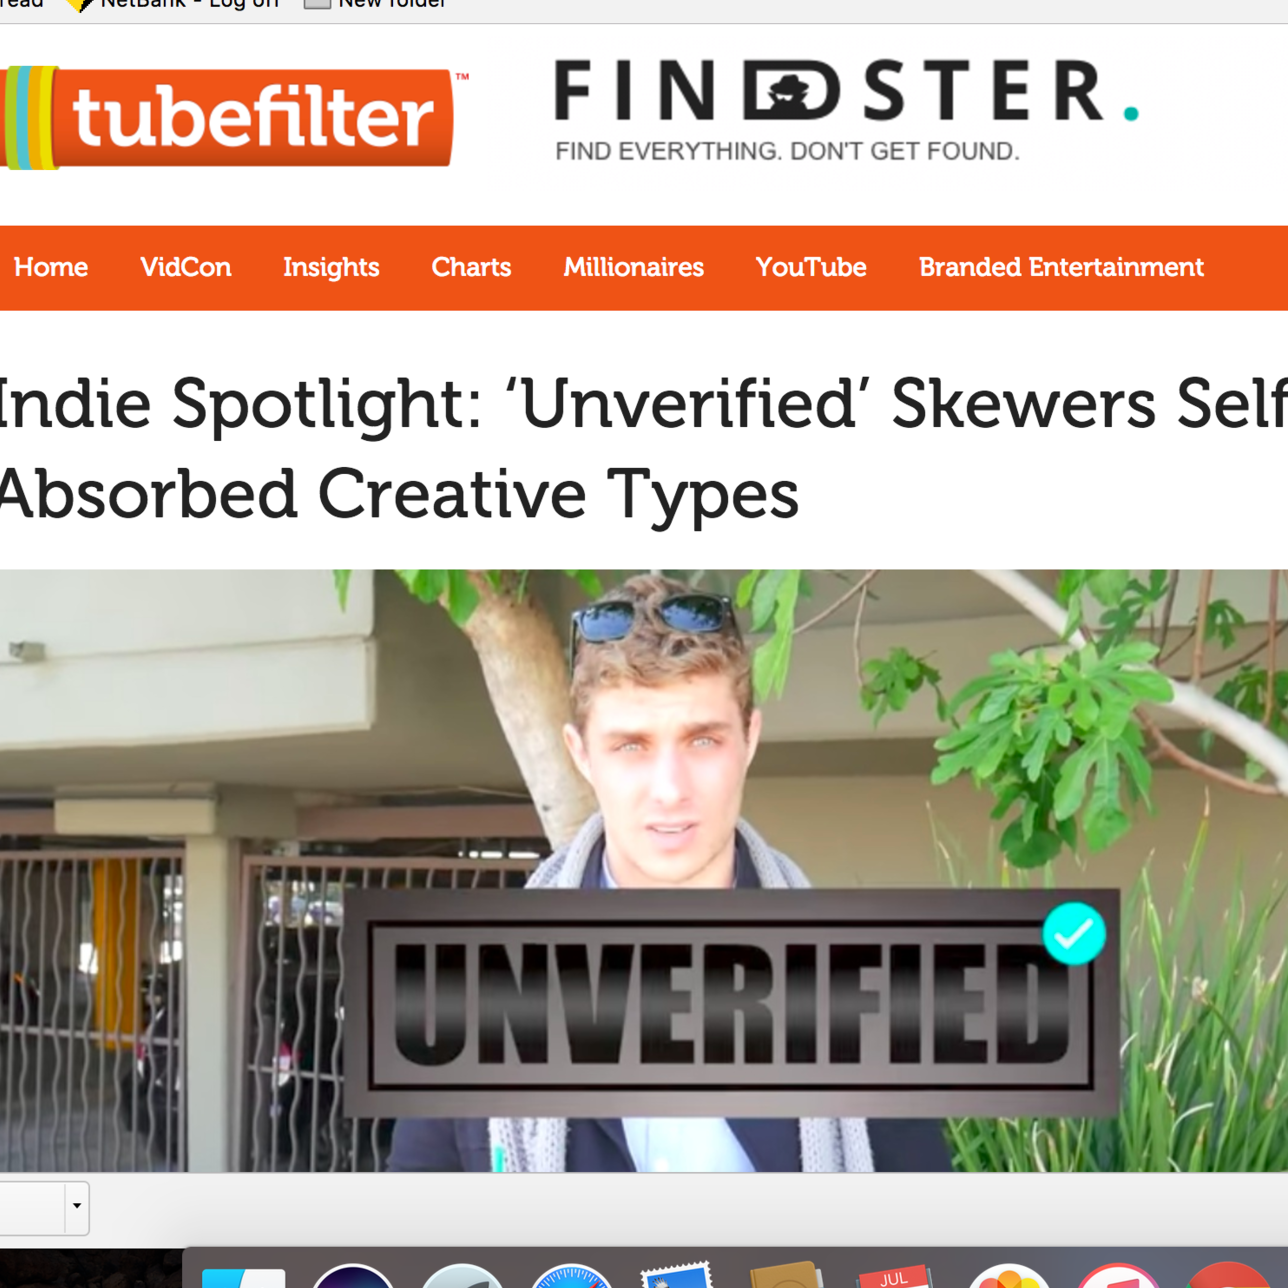 Tubefilter Profile: UNVERIFIED by Alex Cubis